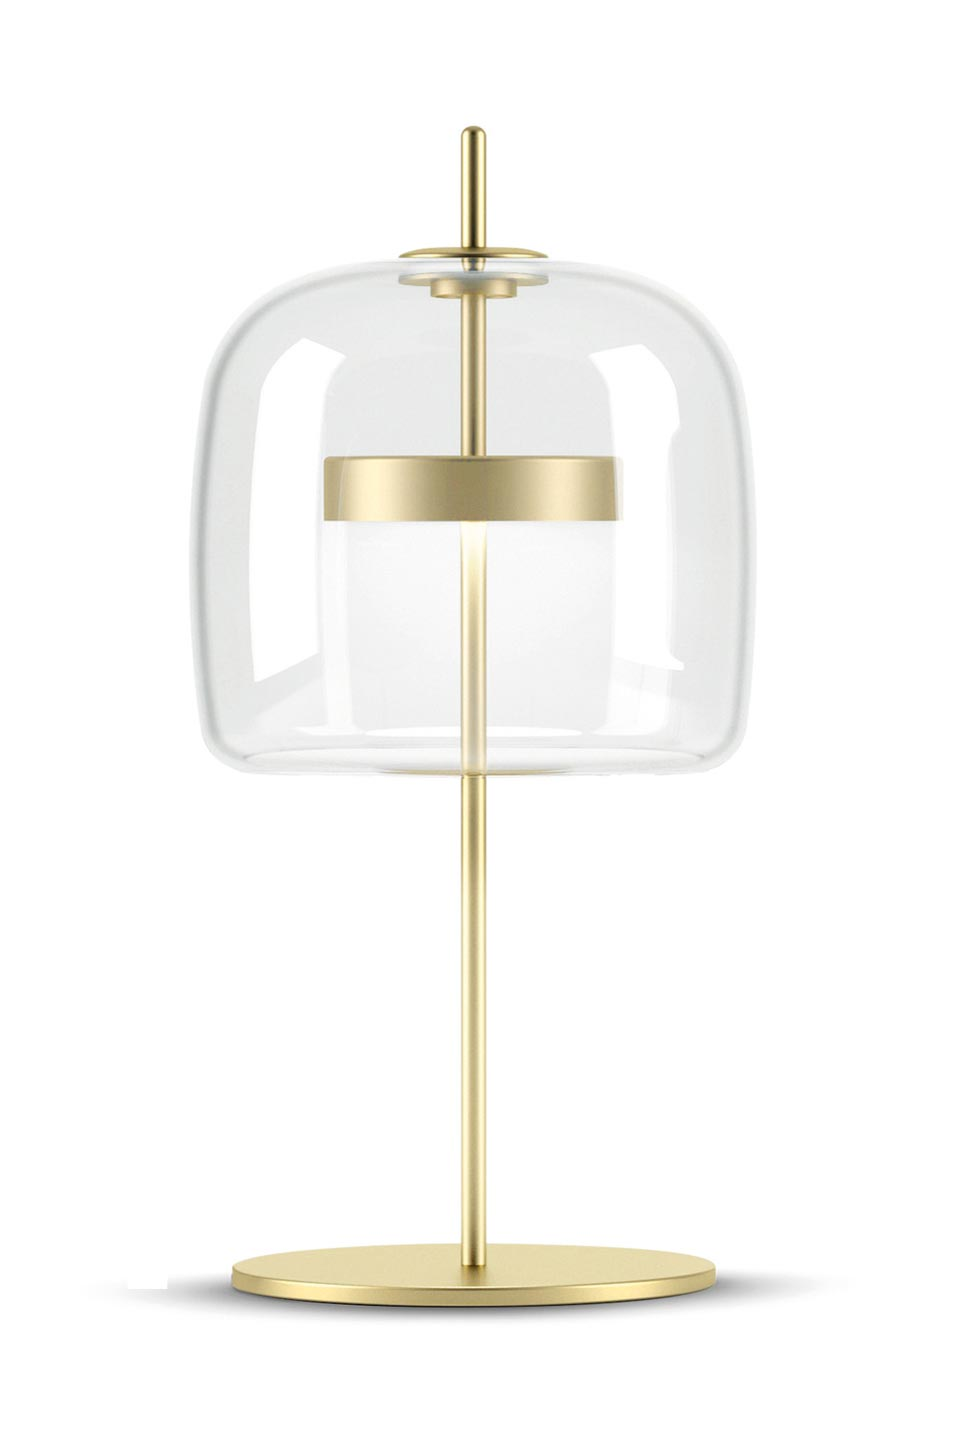 Jube petite lampe de table verre transparent. Vistosi.